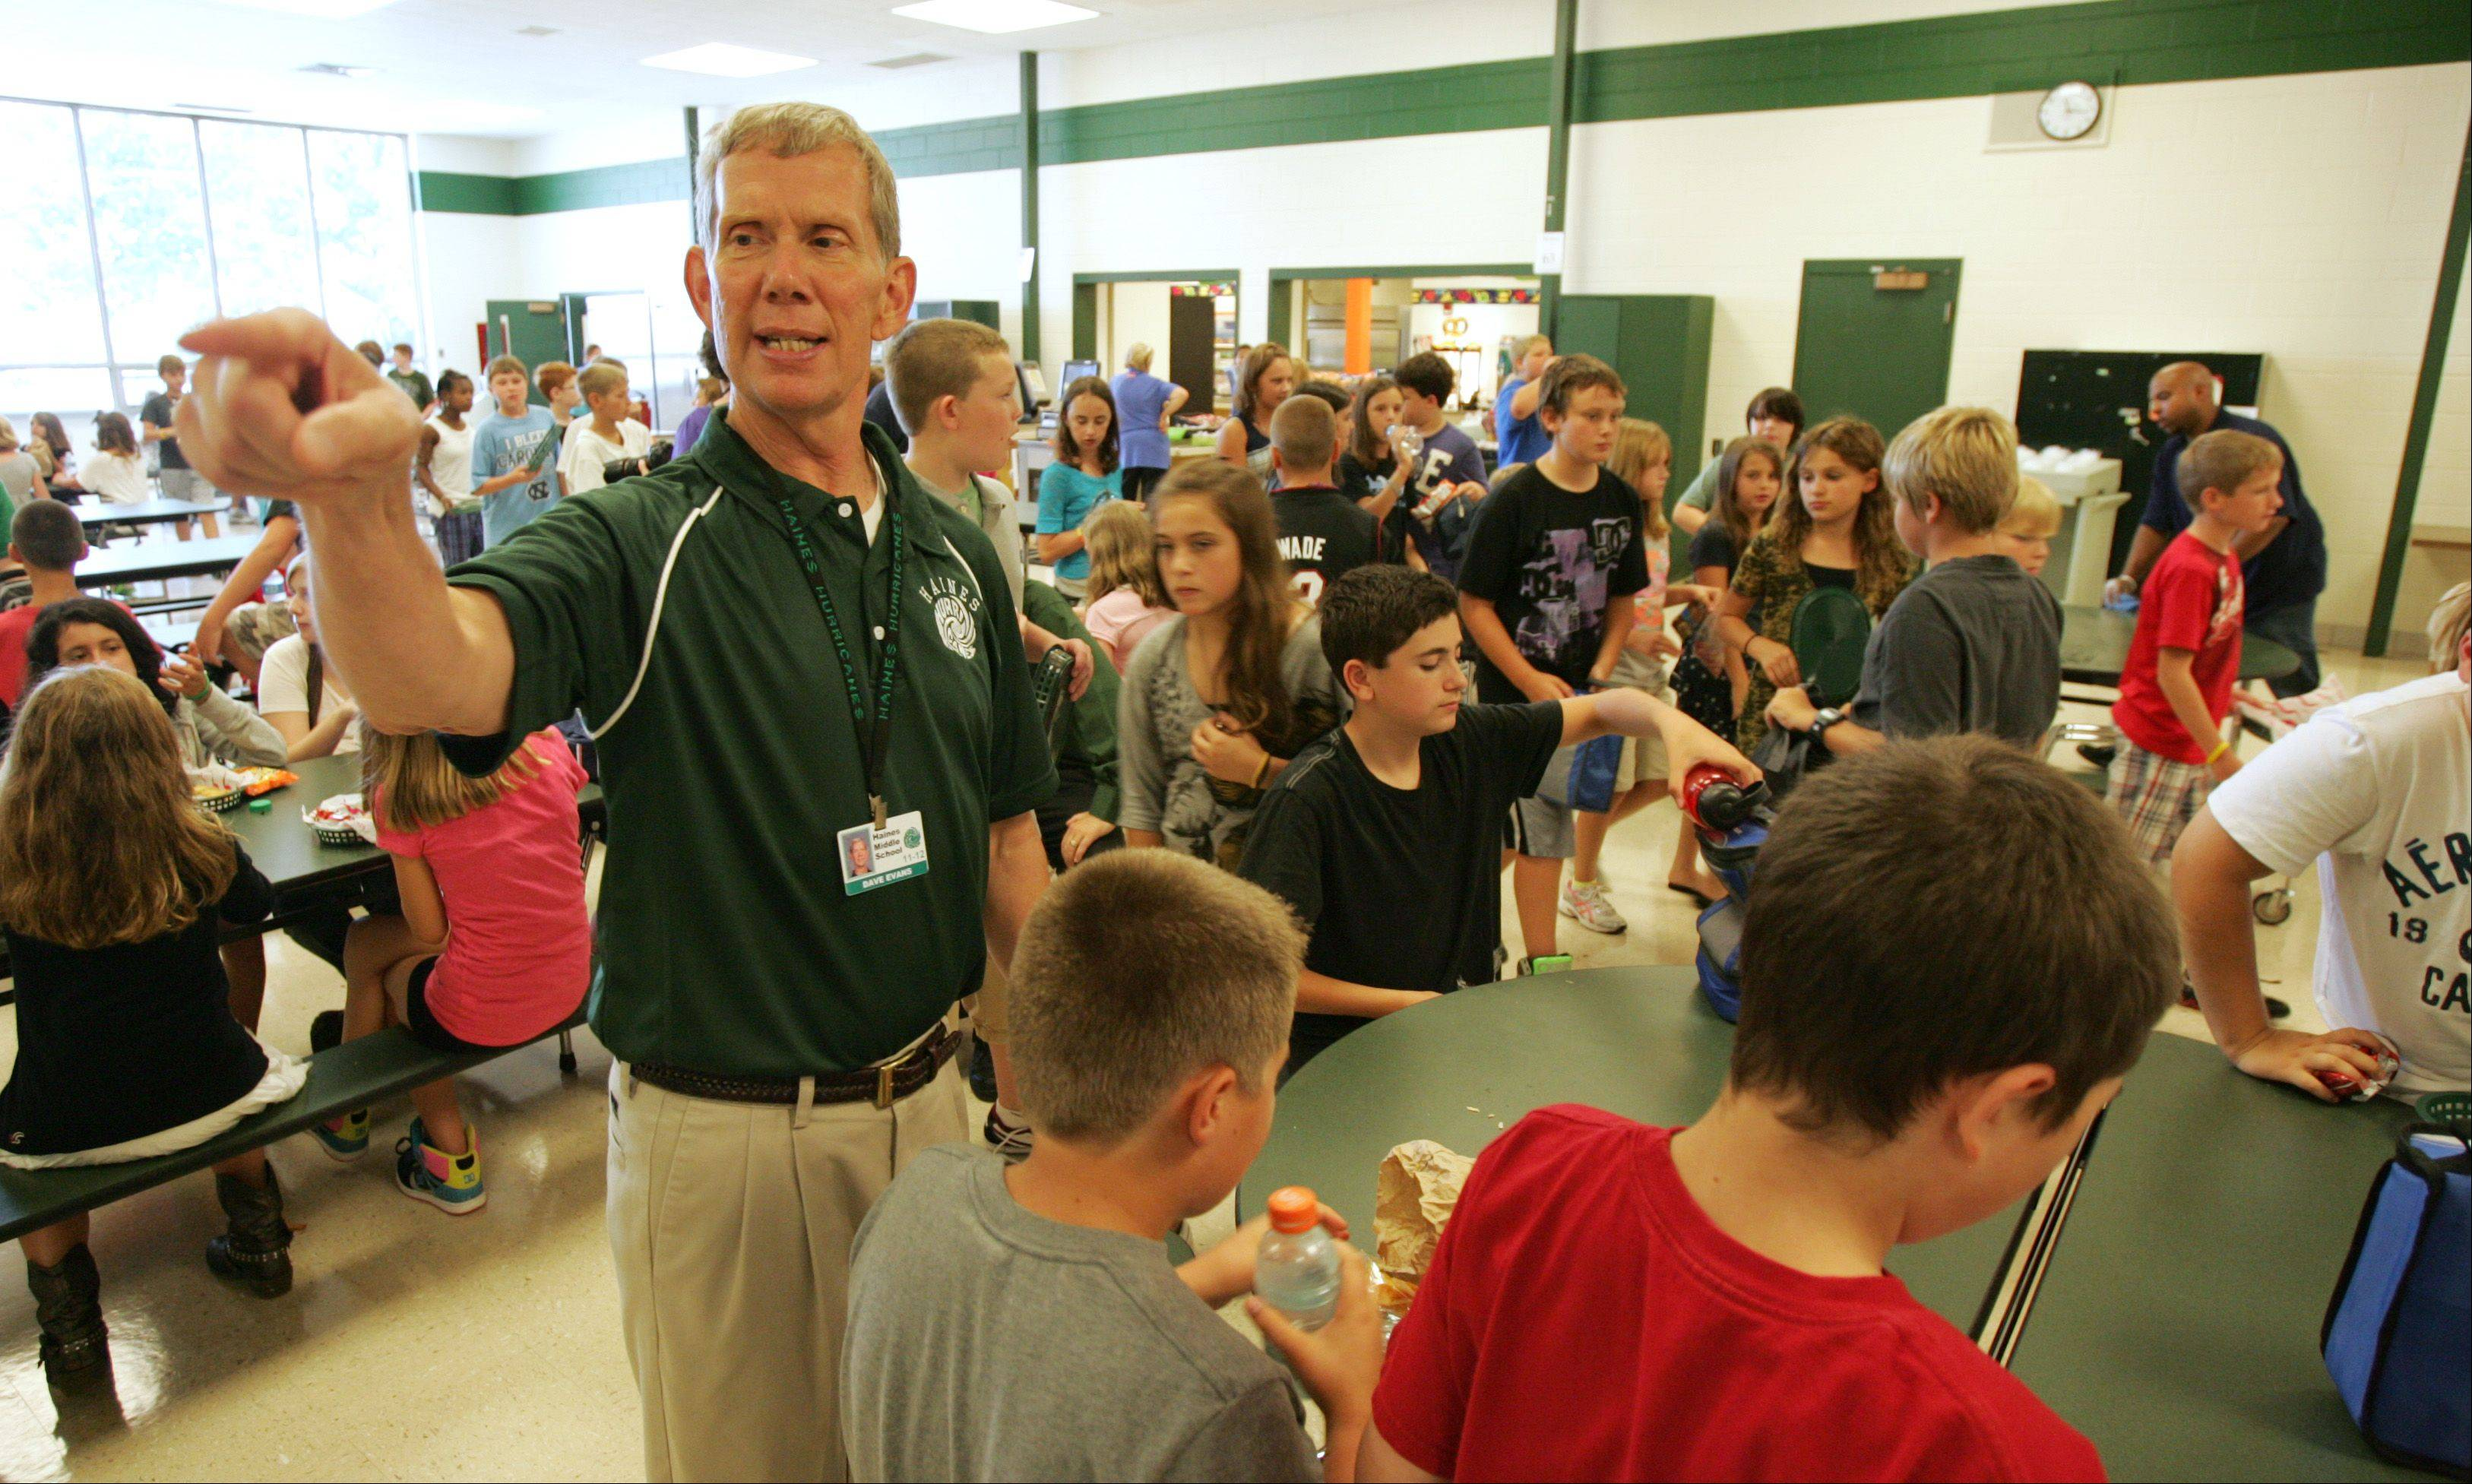 Social studies teacher Dave Evans tries to keep things organized as he dismisses students from the lunchroom Wednesday morning at Haines Middle School in St. Charles.